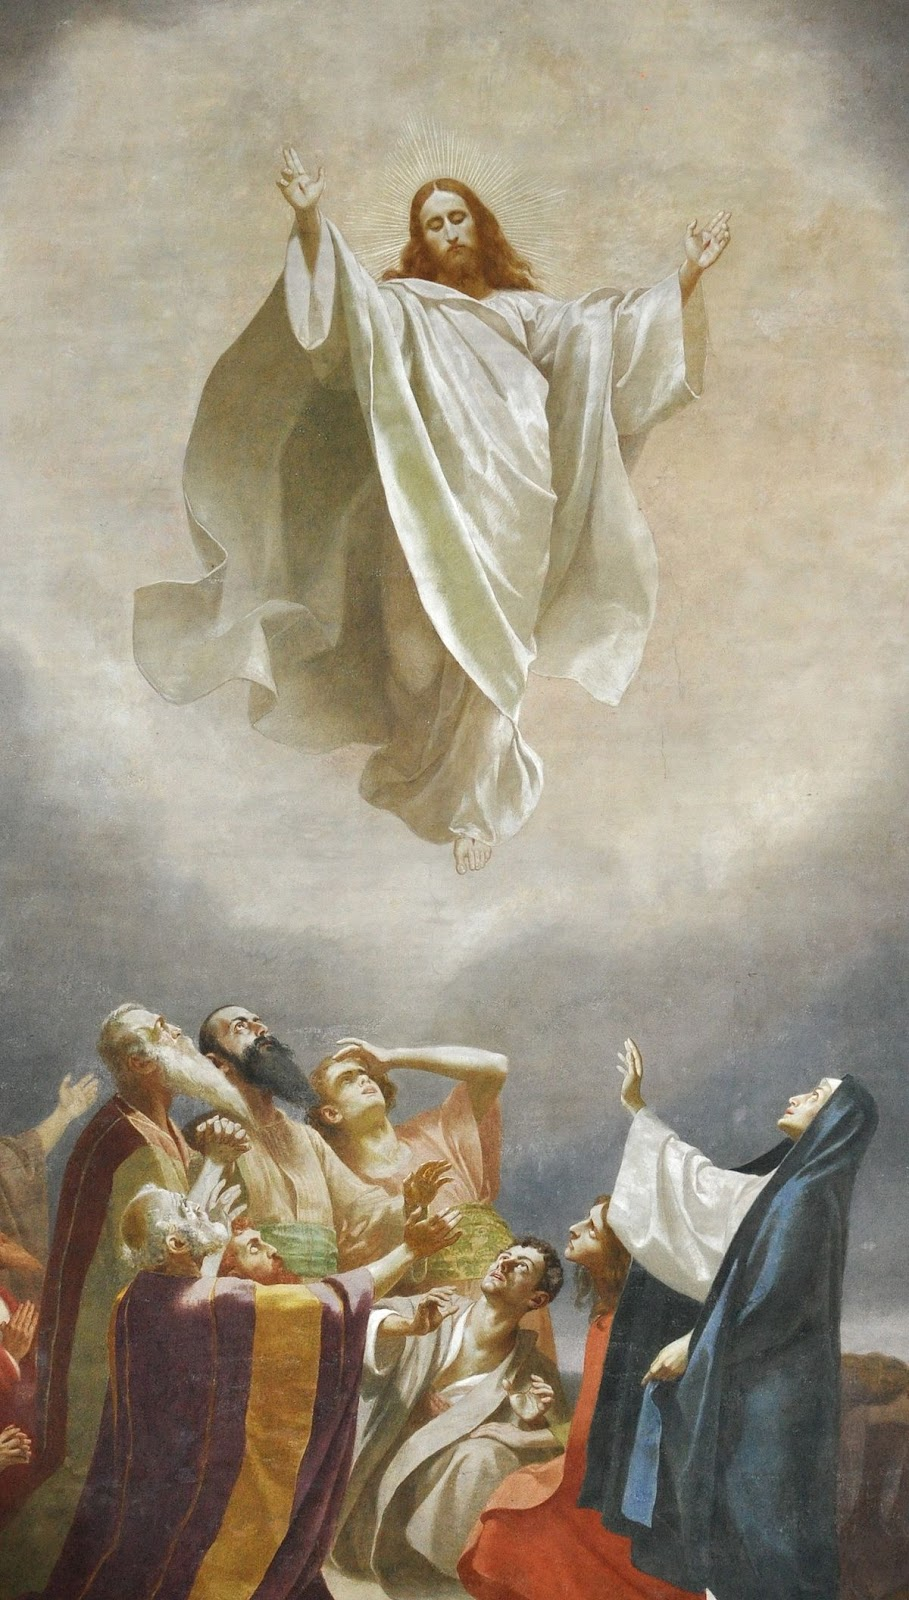 Jesus's Ascension